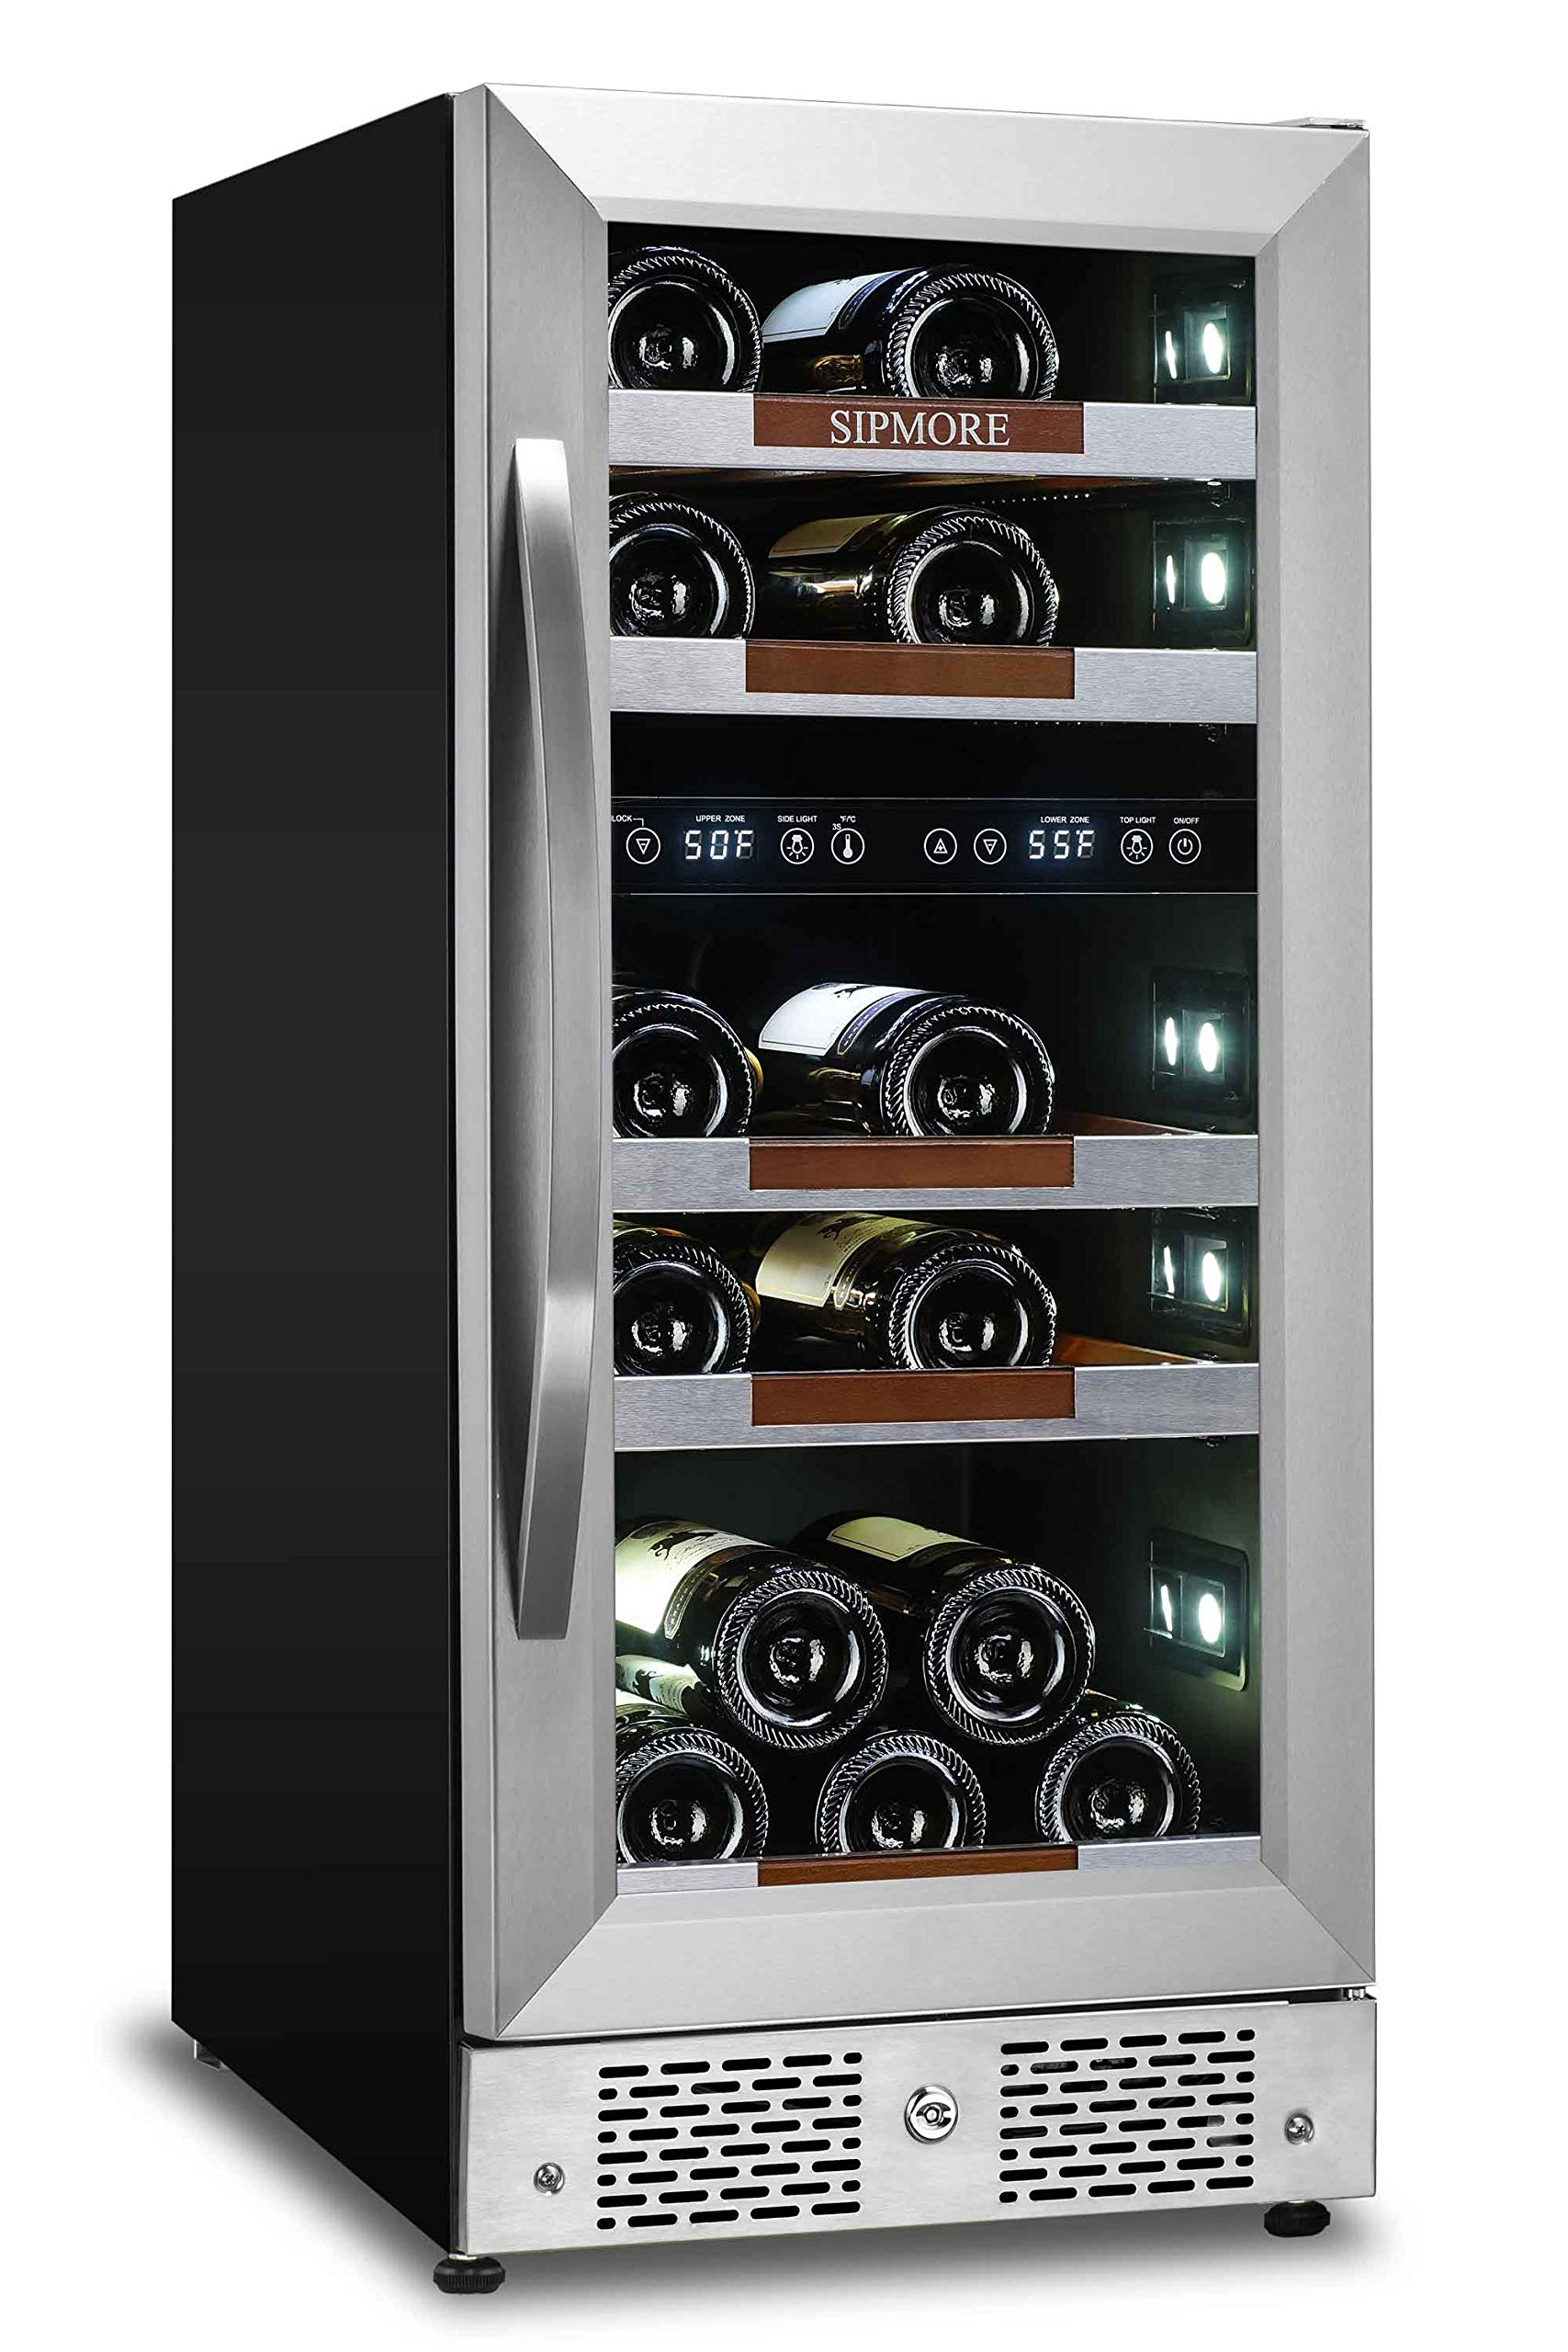 Sipmore Wine Cooler Refrigerator 15'' Dual Zone 21 Multi Sized Bottle Built-in or Freestanding with Seamless Stainless Steel and Smart Temperature Memory System with Stage LED Design by SIPMORE